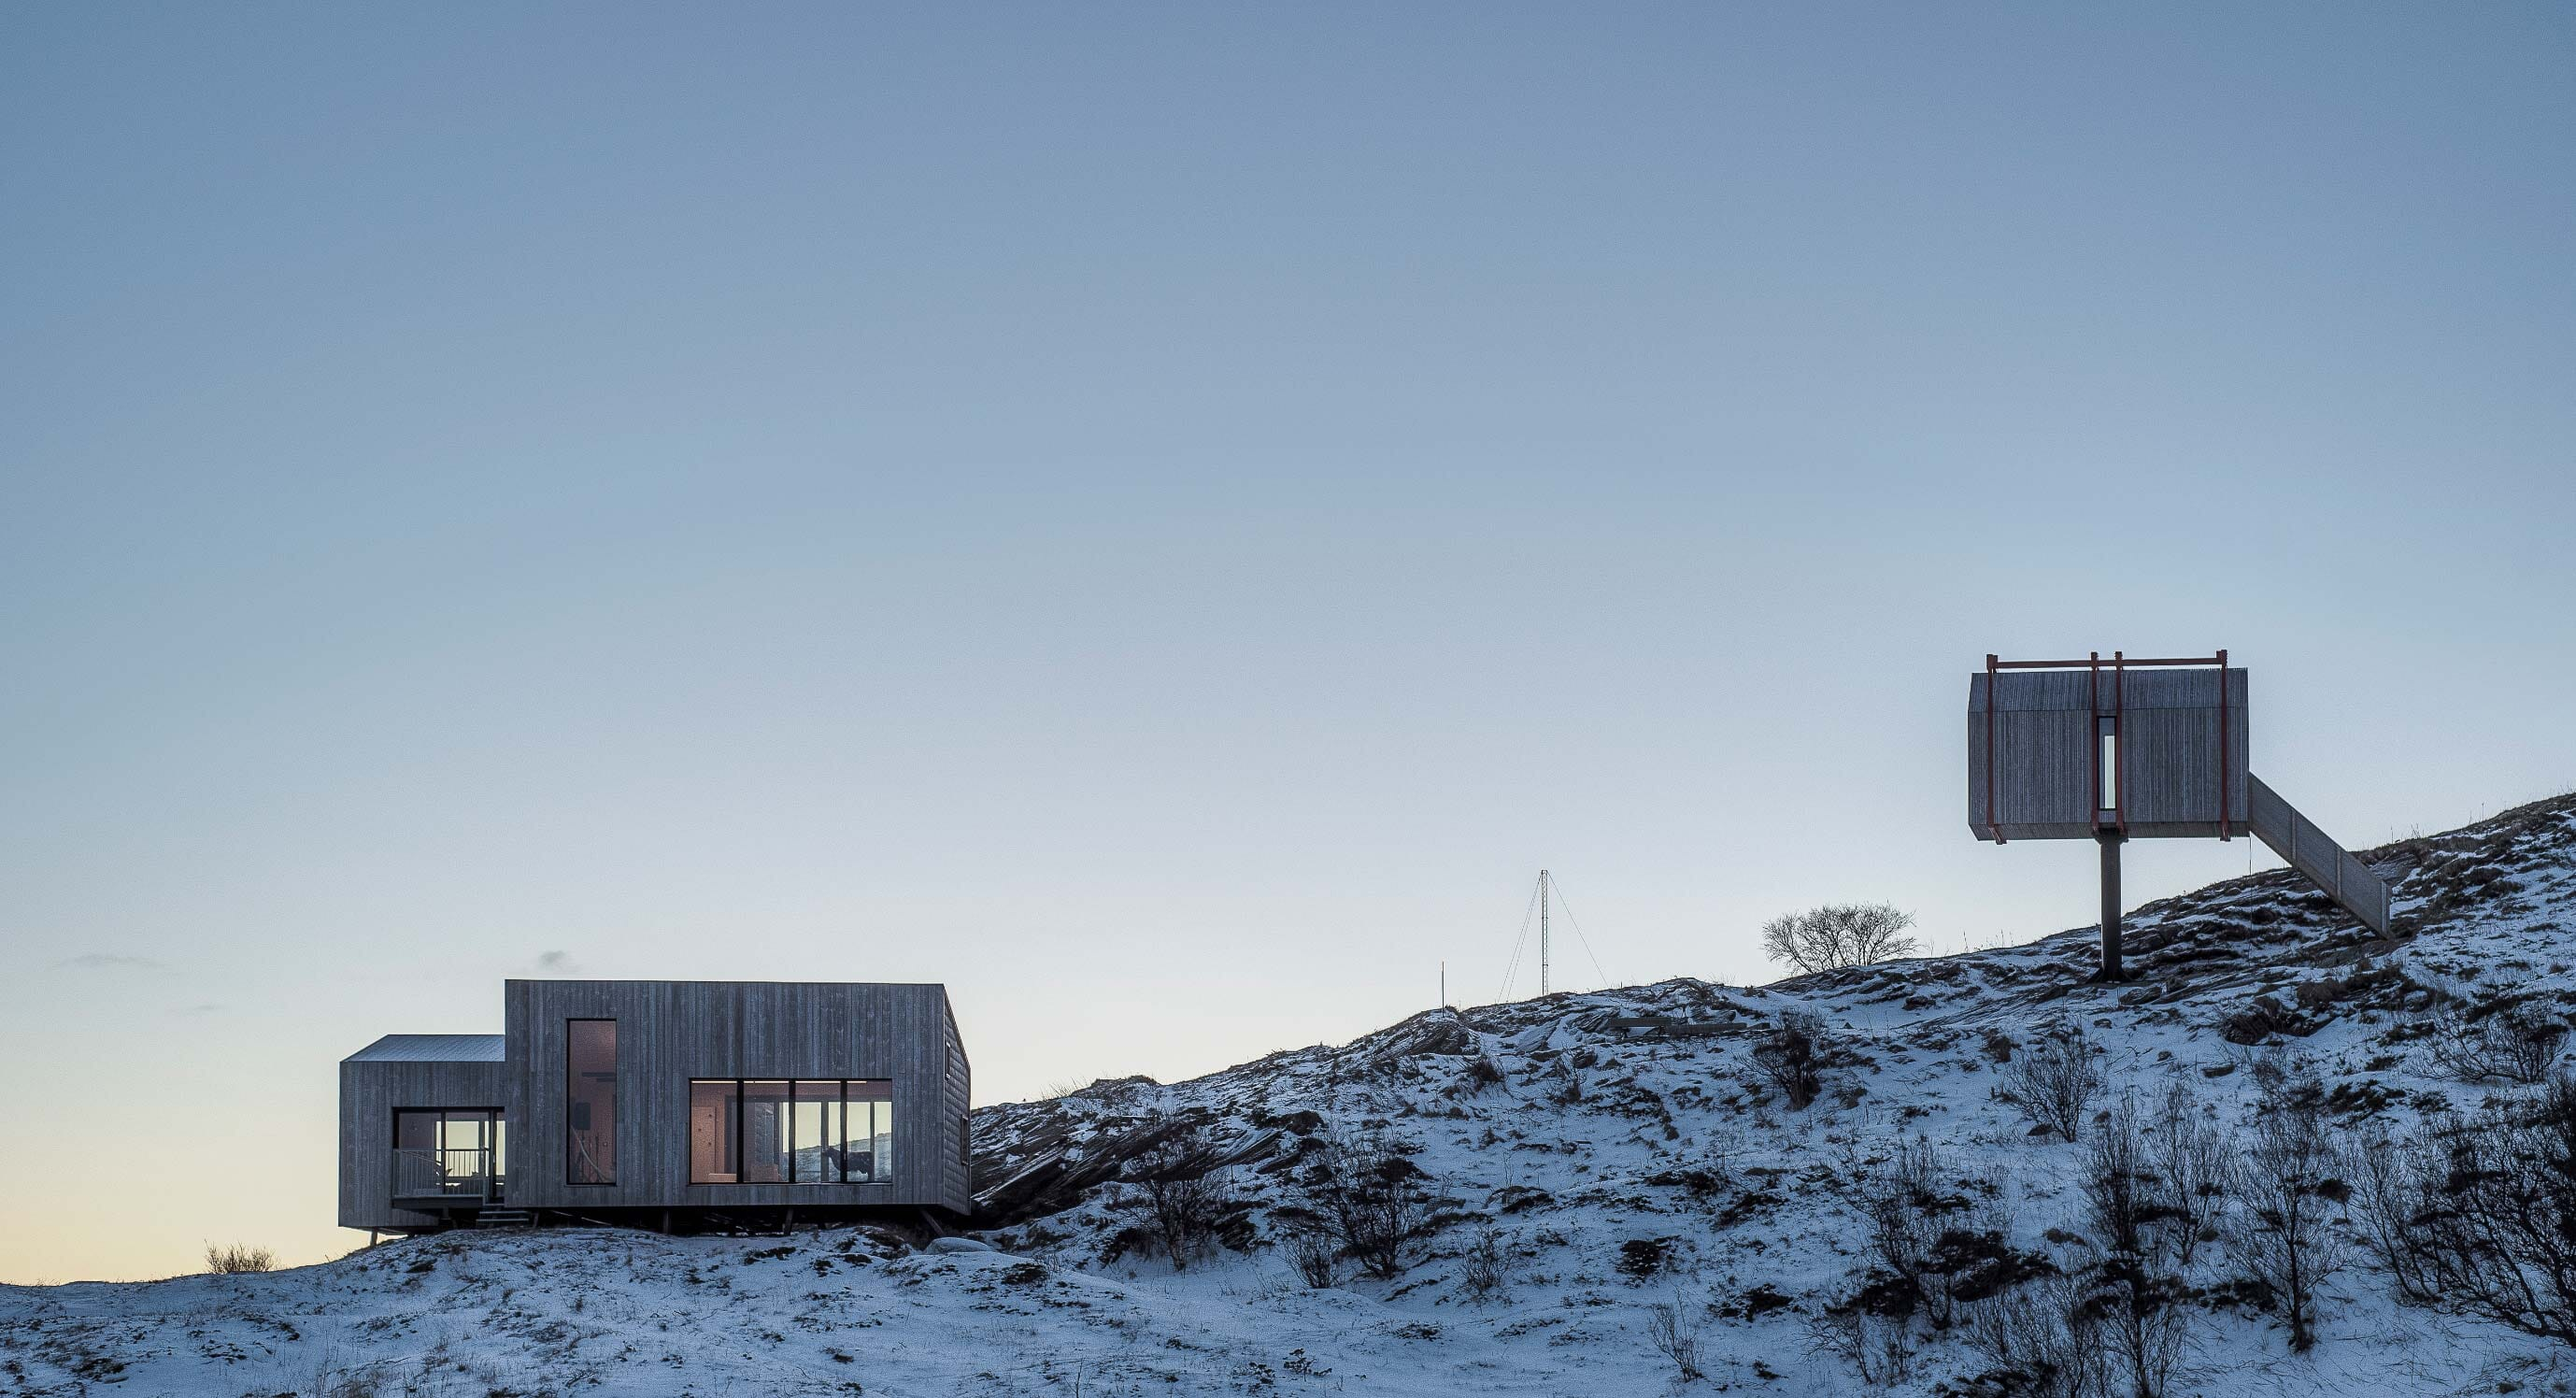 Welcome to Fordypningsrommet: An Artist Retreat in the Arctic Circle